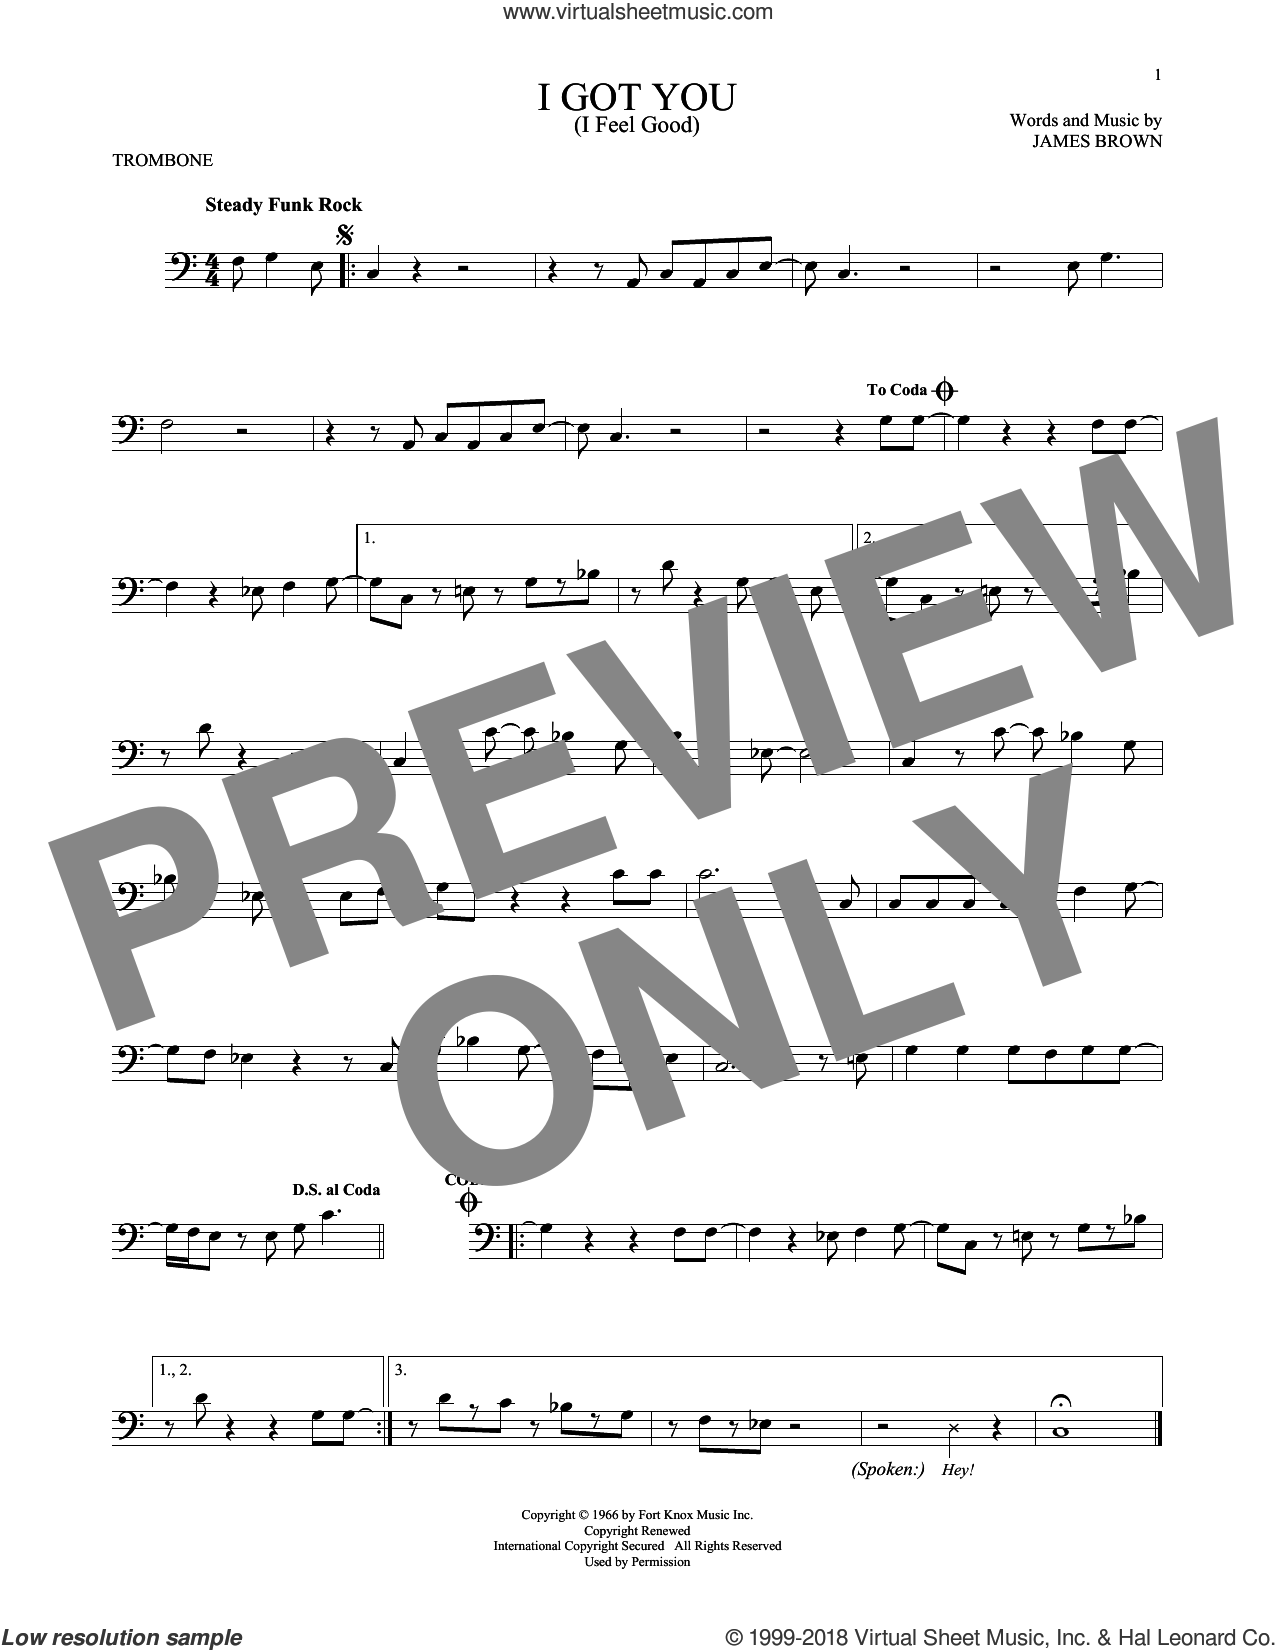 I Got You (I Feel Good) sheet music for trombone solo by James Brown, intermediate skill level